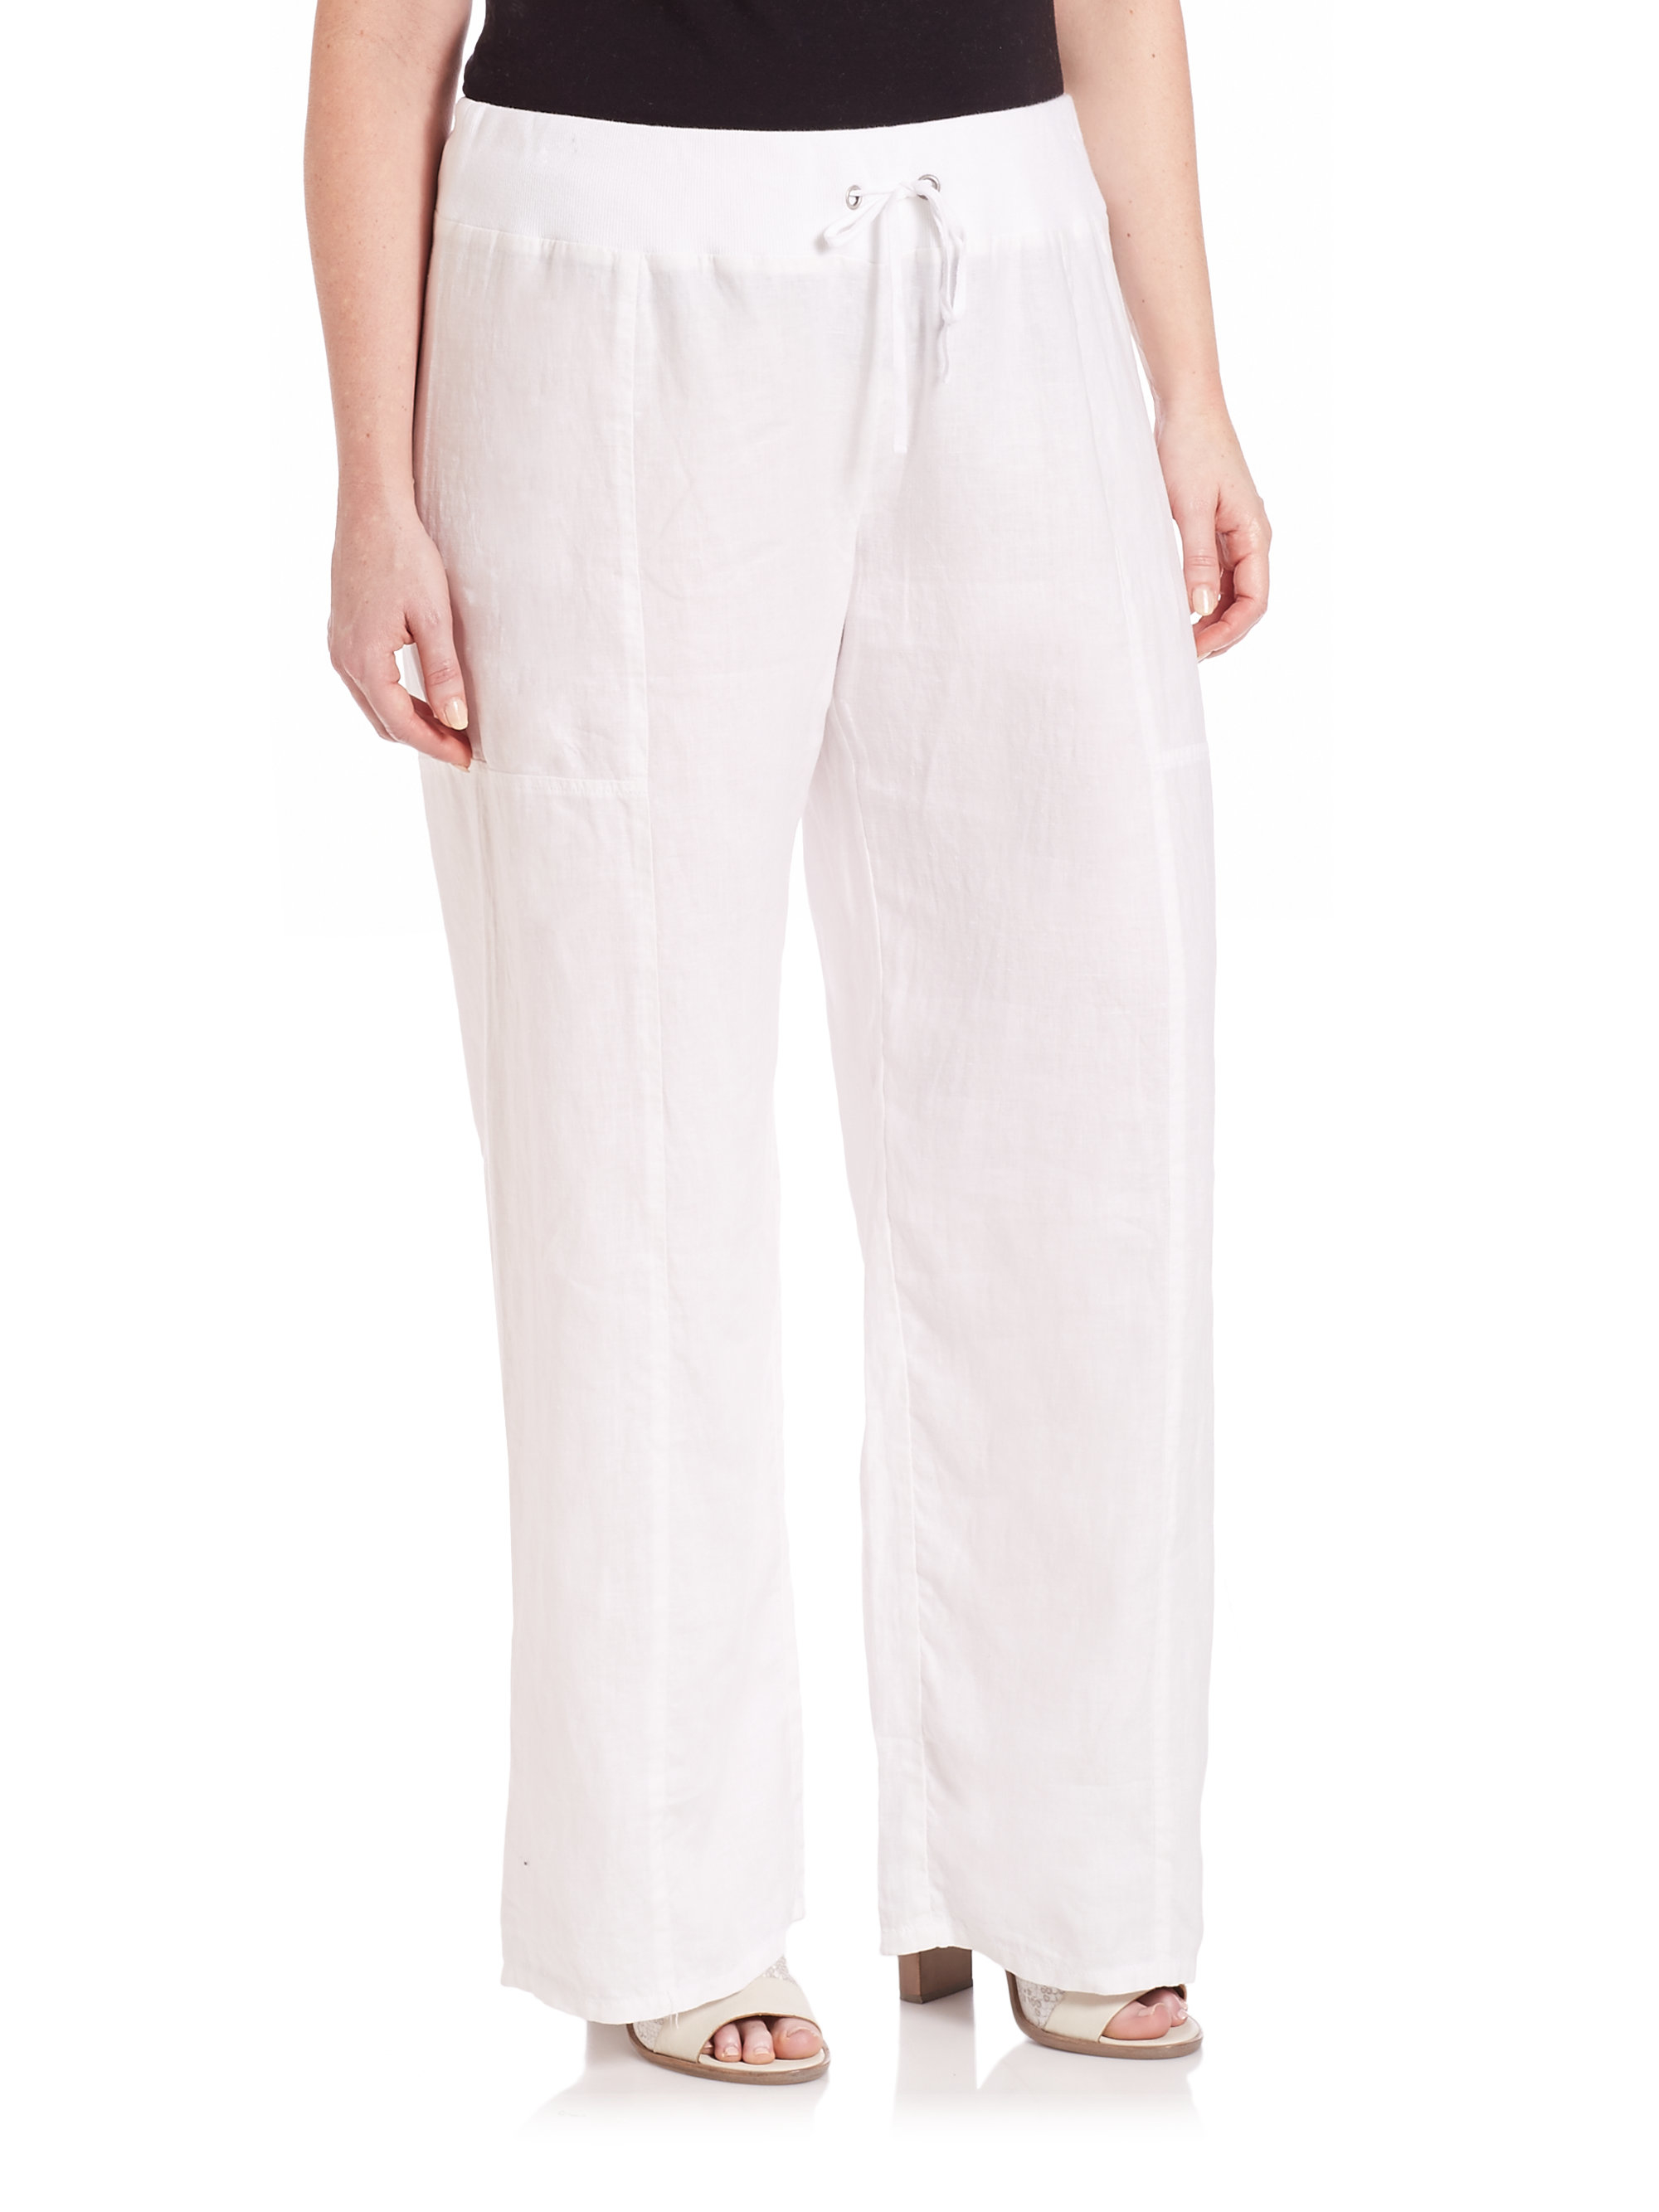 White linen pants / White wide leg pants / White linen trousers / Linen clothing Wide leg pants with pockets in White color. They are designed with wide leg cut, elastic band on the back for easy slip-on style and with two pockets in front for convenience in wearing, high waist fit make your legs looks longer.